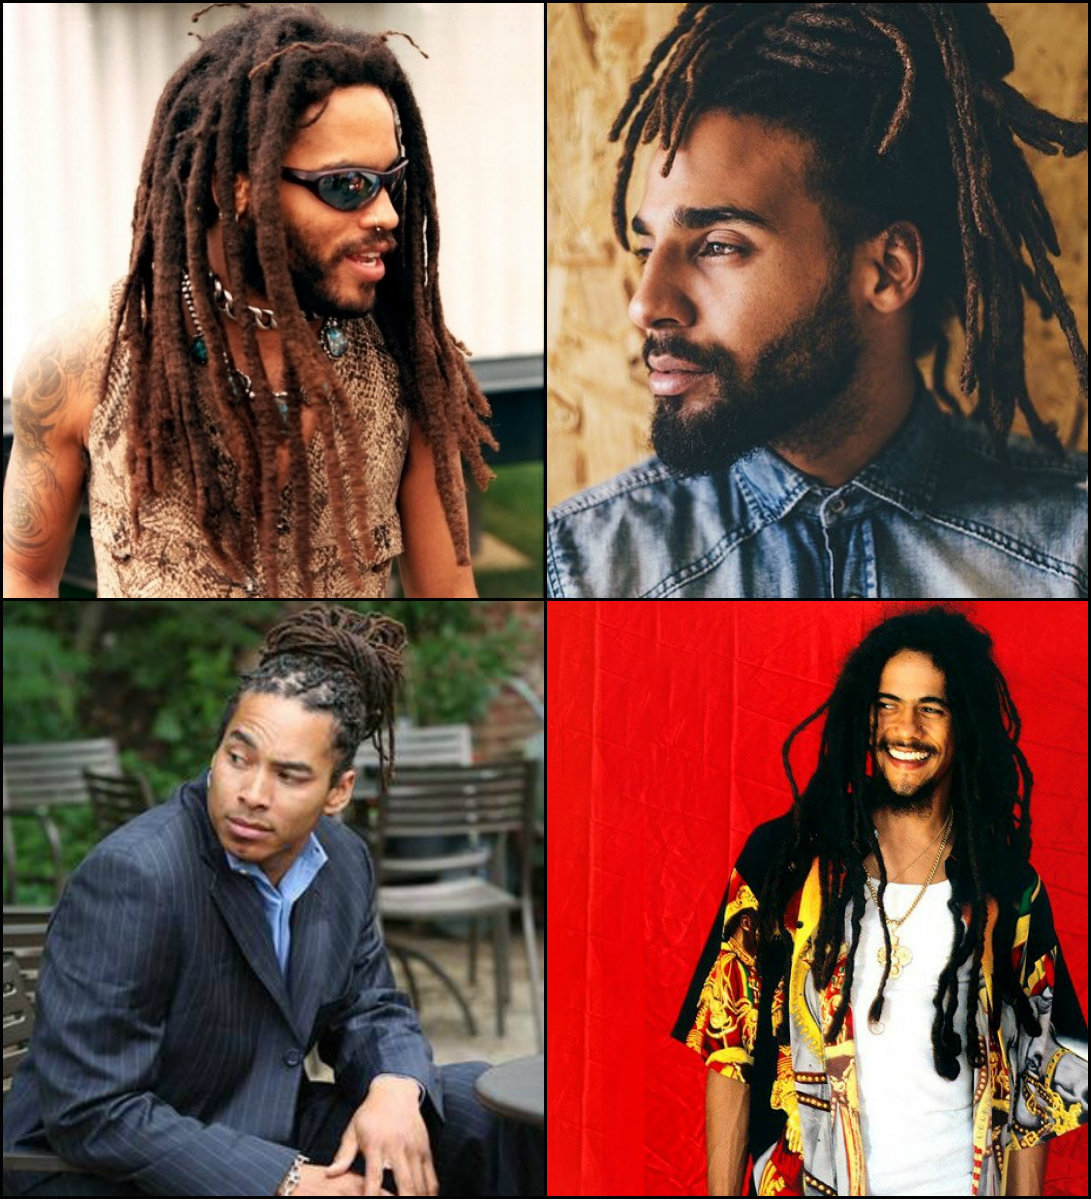 Coolest Dreads Hairstyles for Men